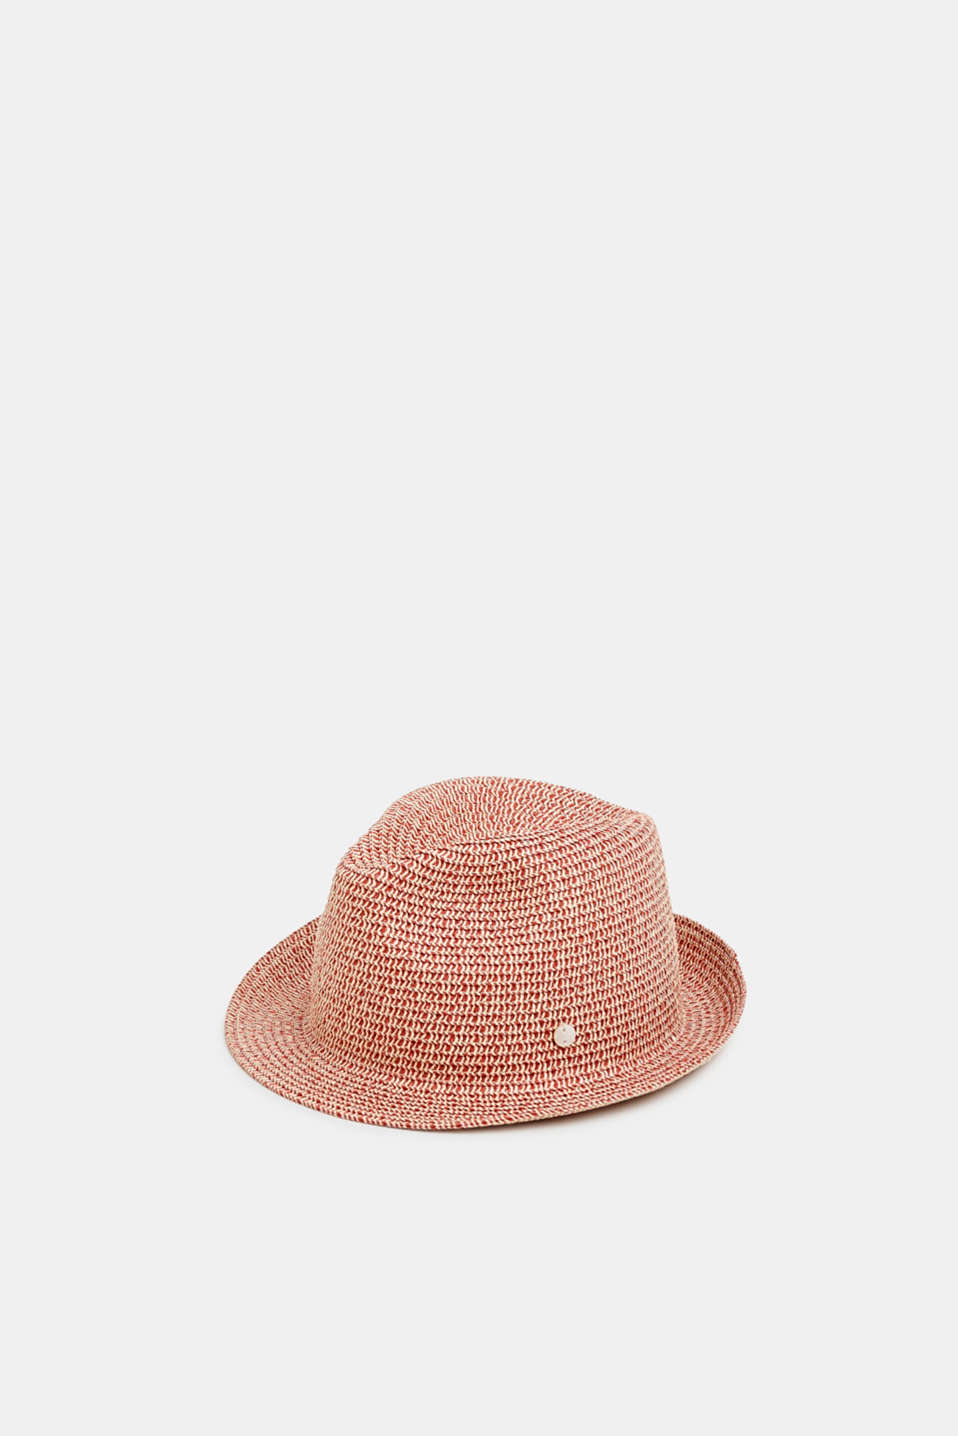 Esprit - Trilby hat made of two-tone, braided straw